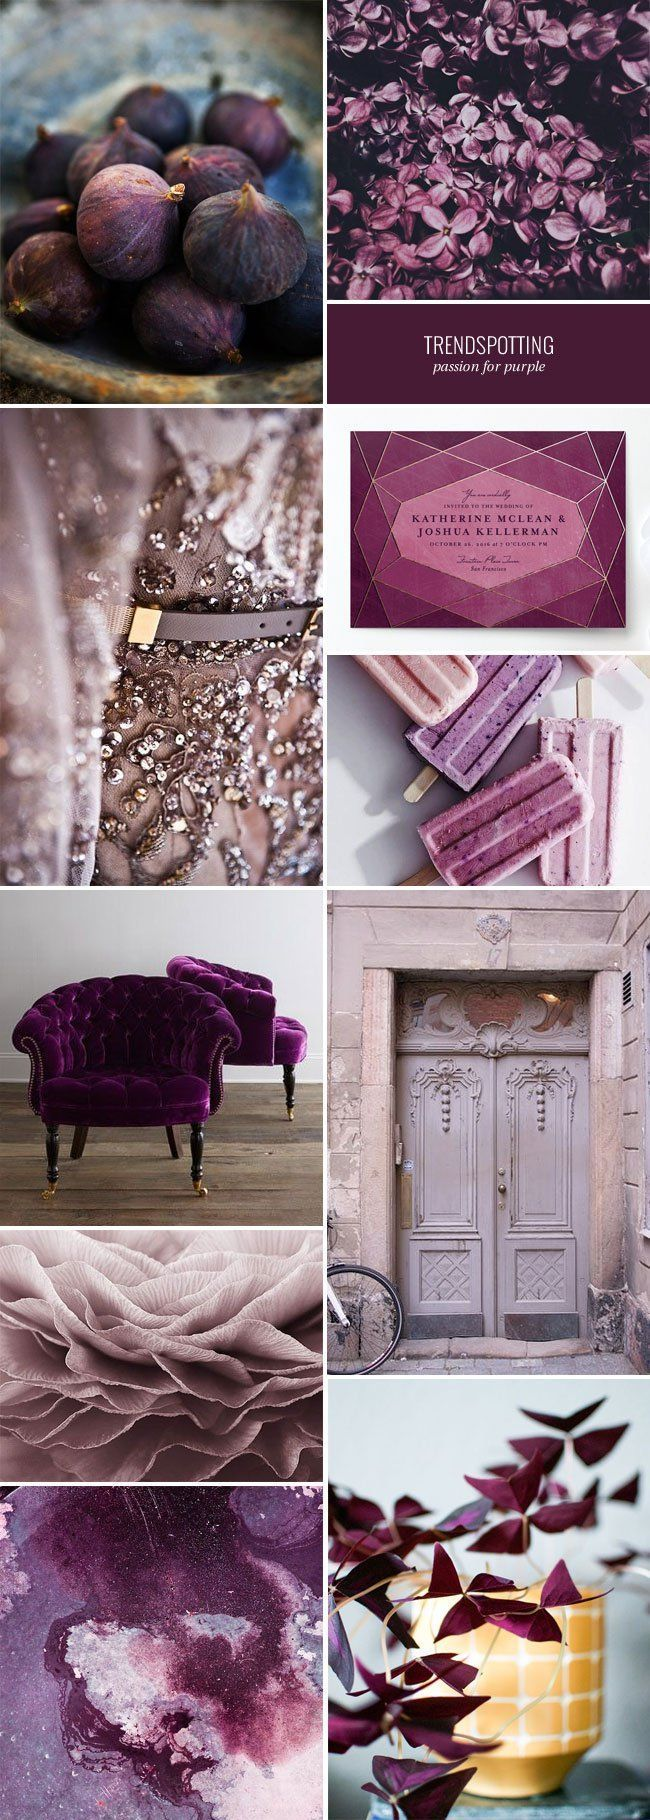 nice Trendspotting : Passion for Purple (paper crave) by http://www.danafashiontrends.us/fashion-mood-boards/trendspotting-passion-for-purple-paper-crave/